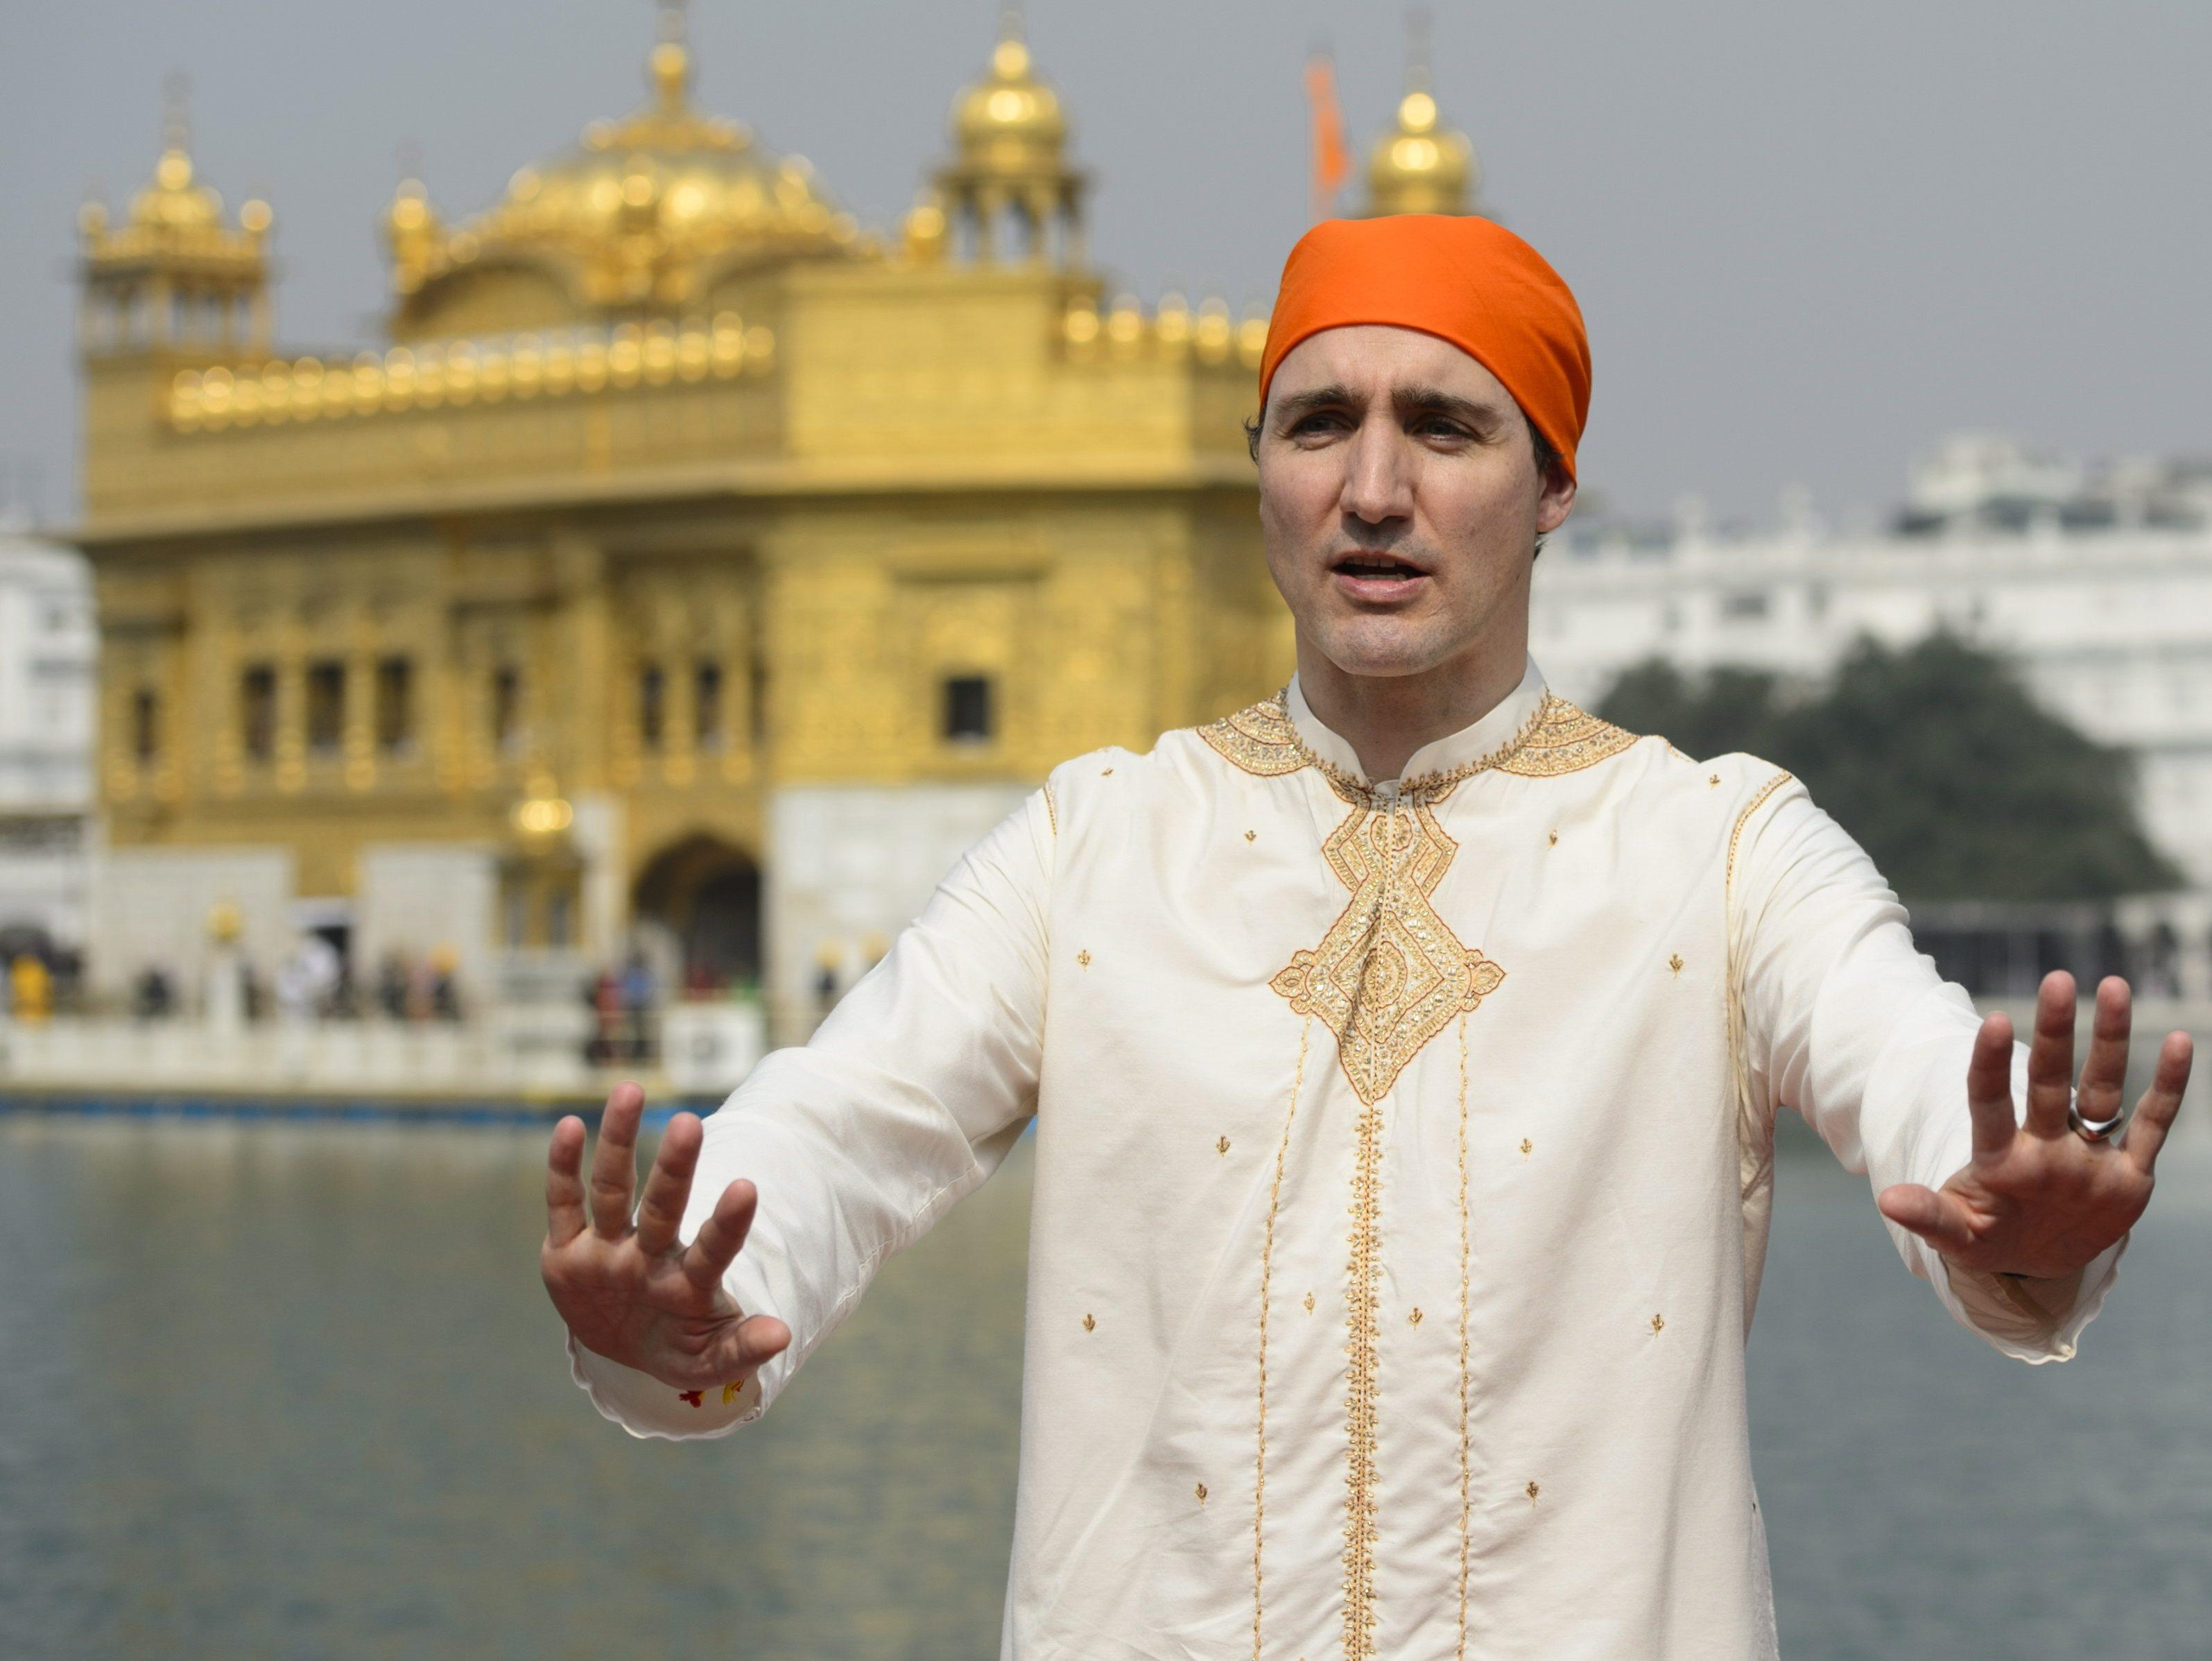 Critics slam New Year's Eve parody of Trudeau's trip to India